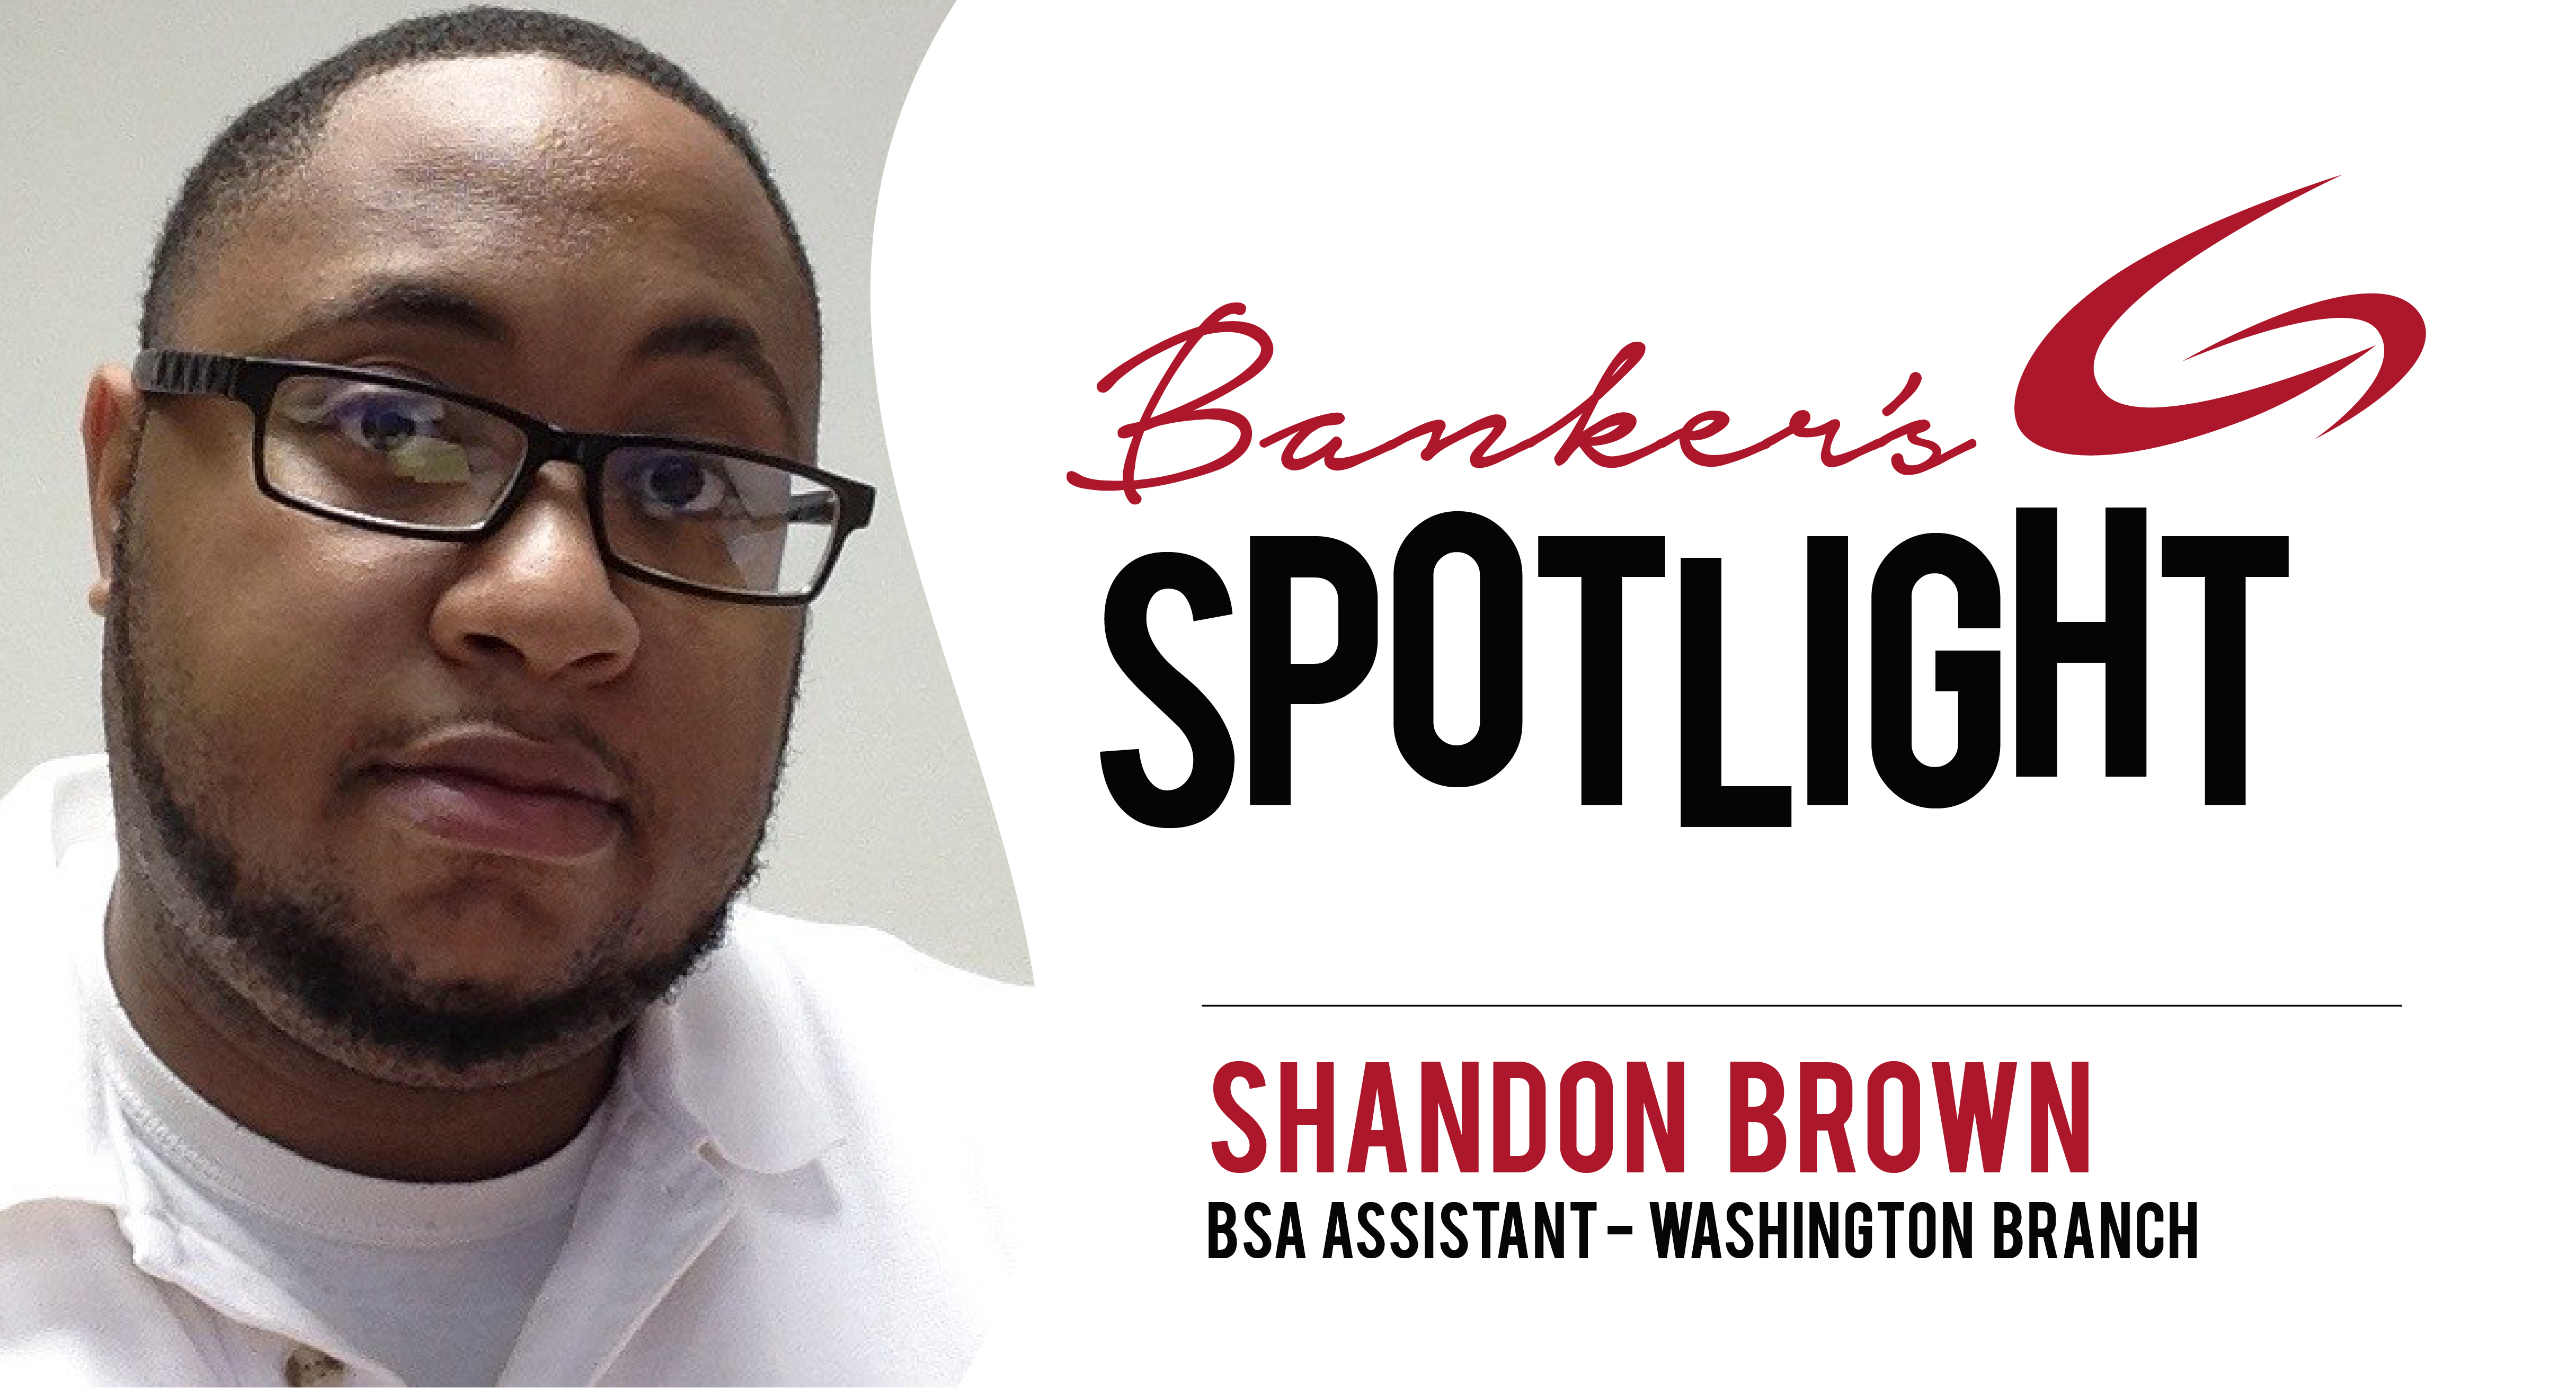 Banker Spotlight - Shandon Brown